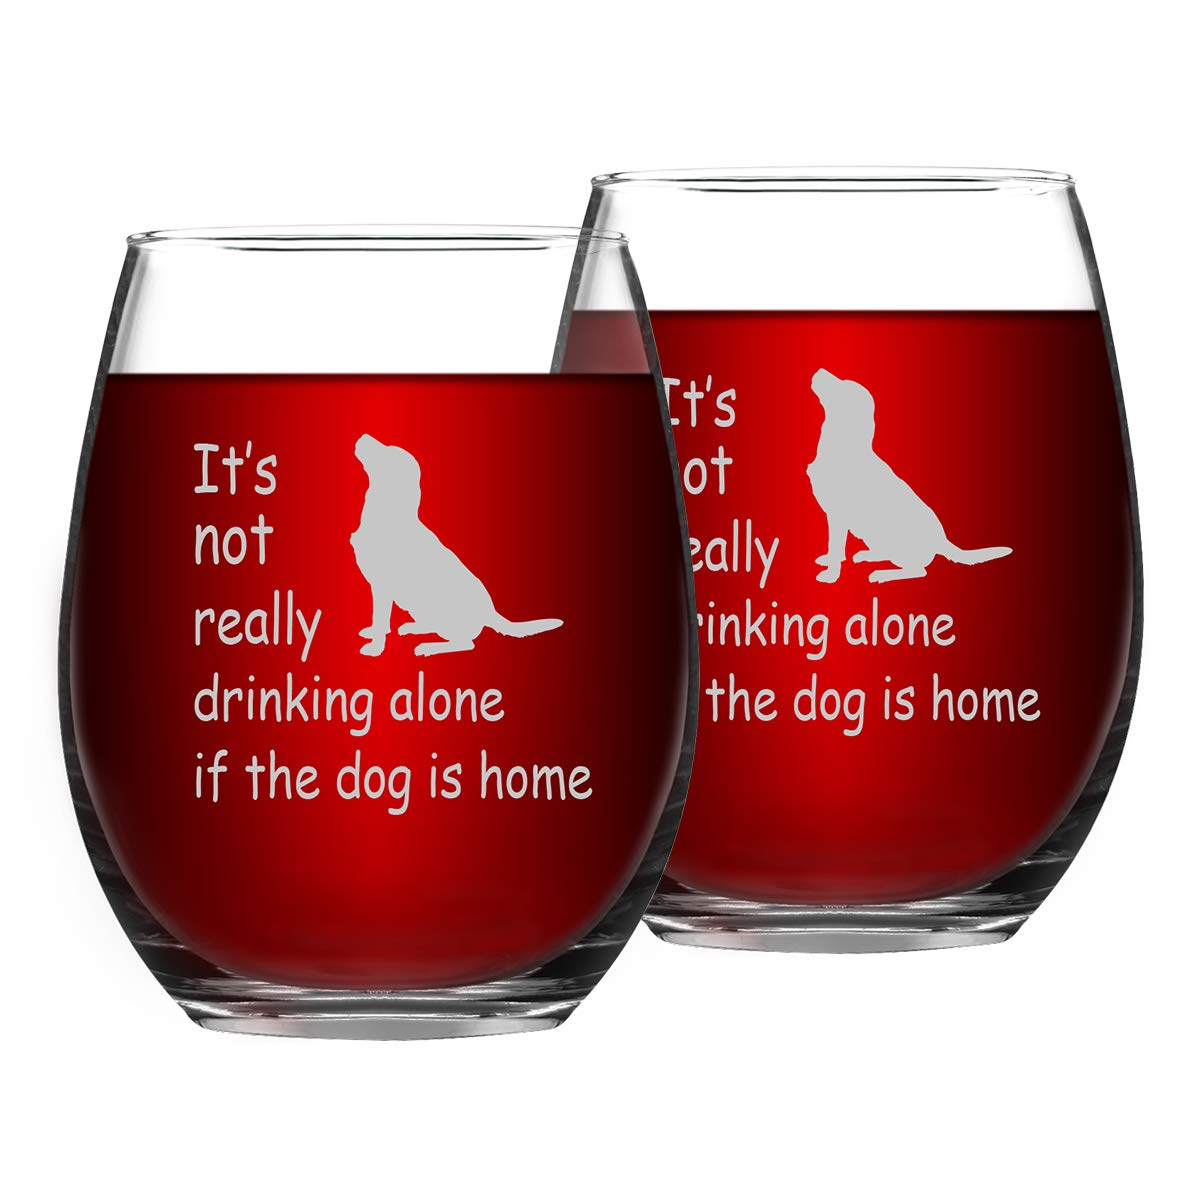 It's Not Really Drinking Alone If The Dog Is Home Fuuny Stemless Wine Glass. Unique Gift for Dog Lovers Dog Mom Pet Lover Dog Owner, 15 Oz, Set of 2